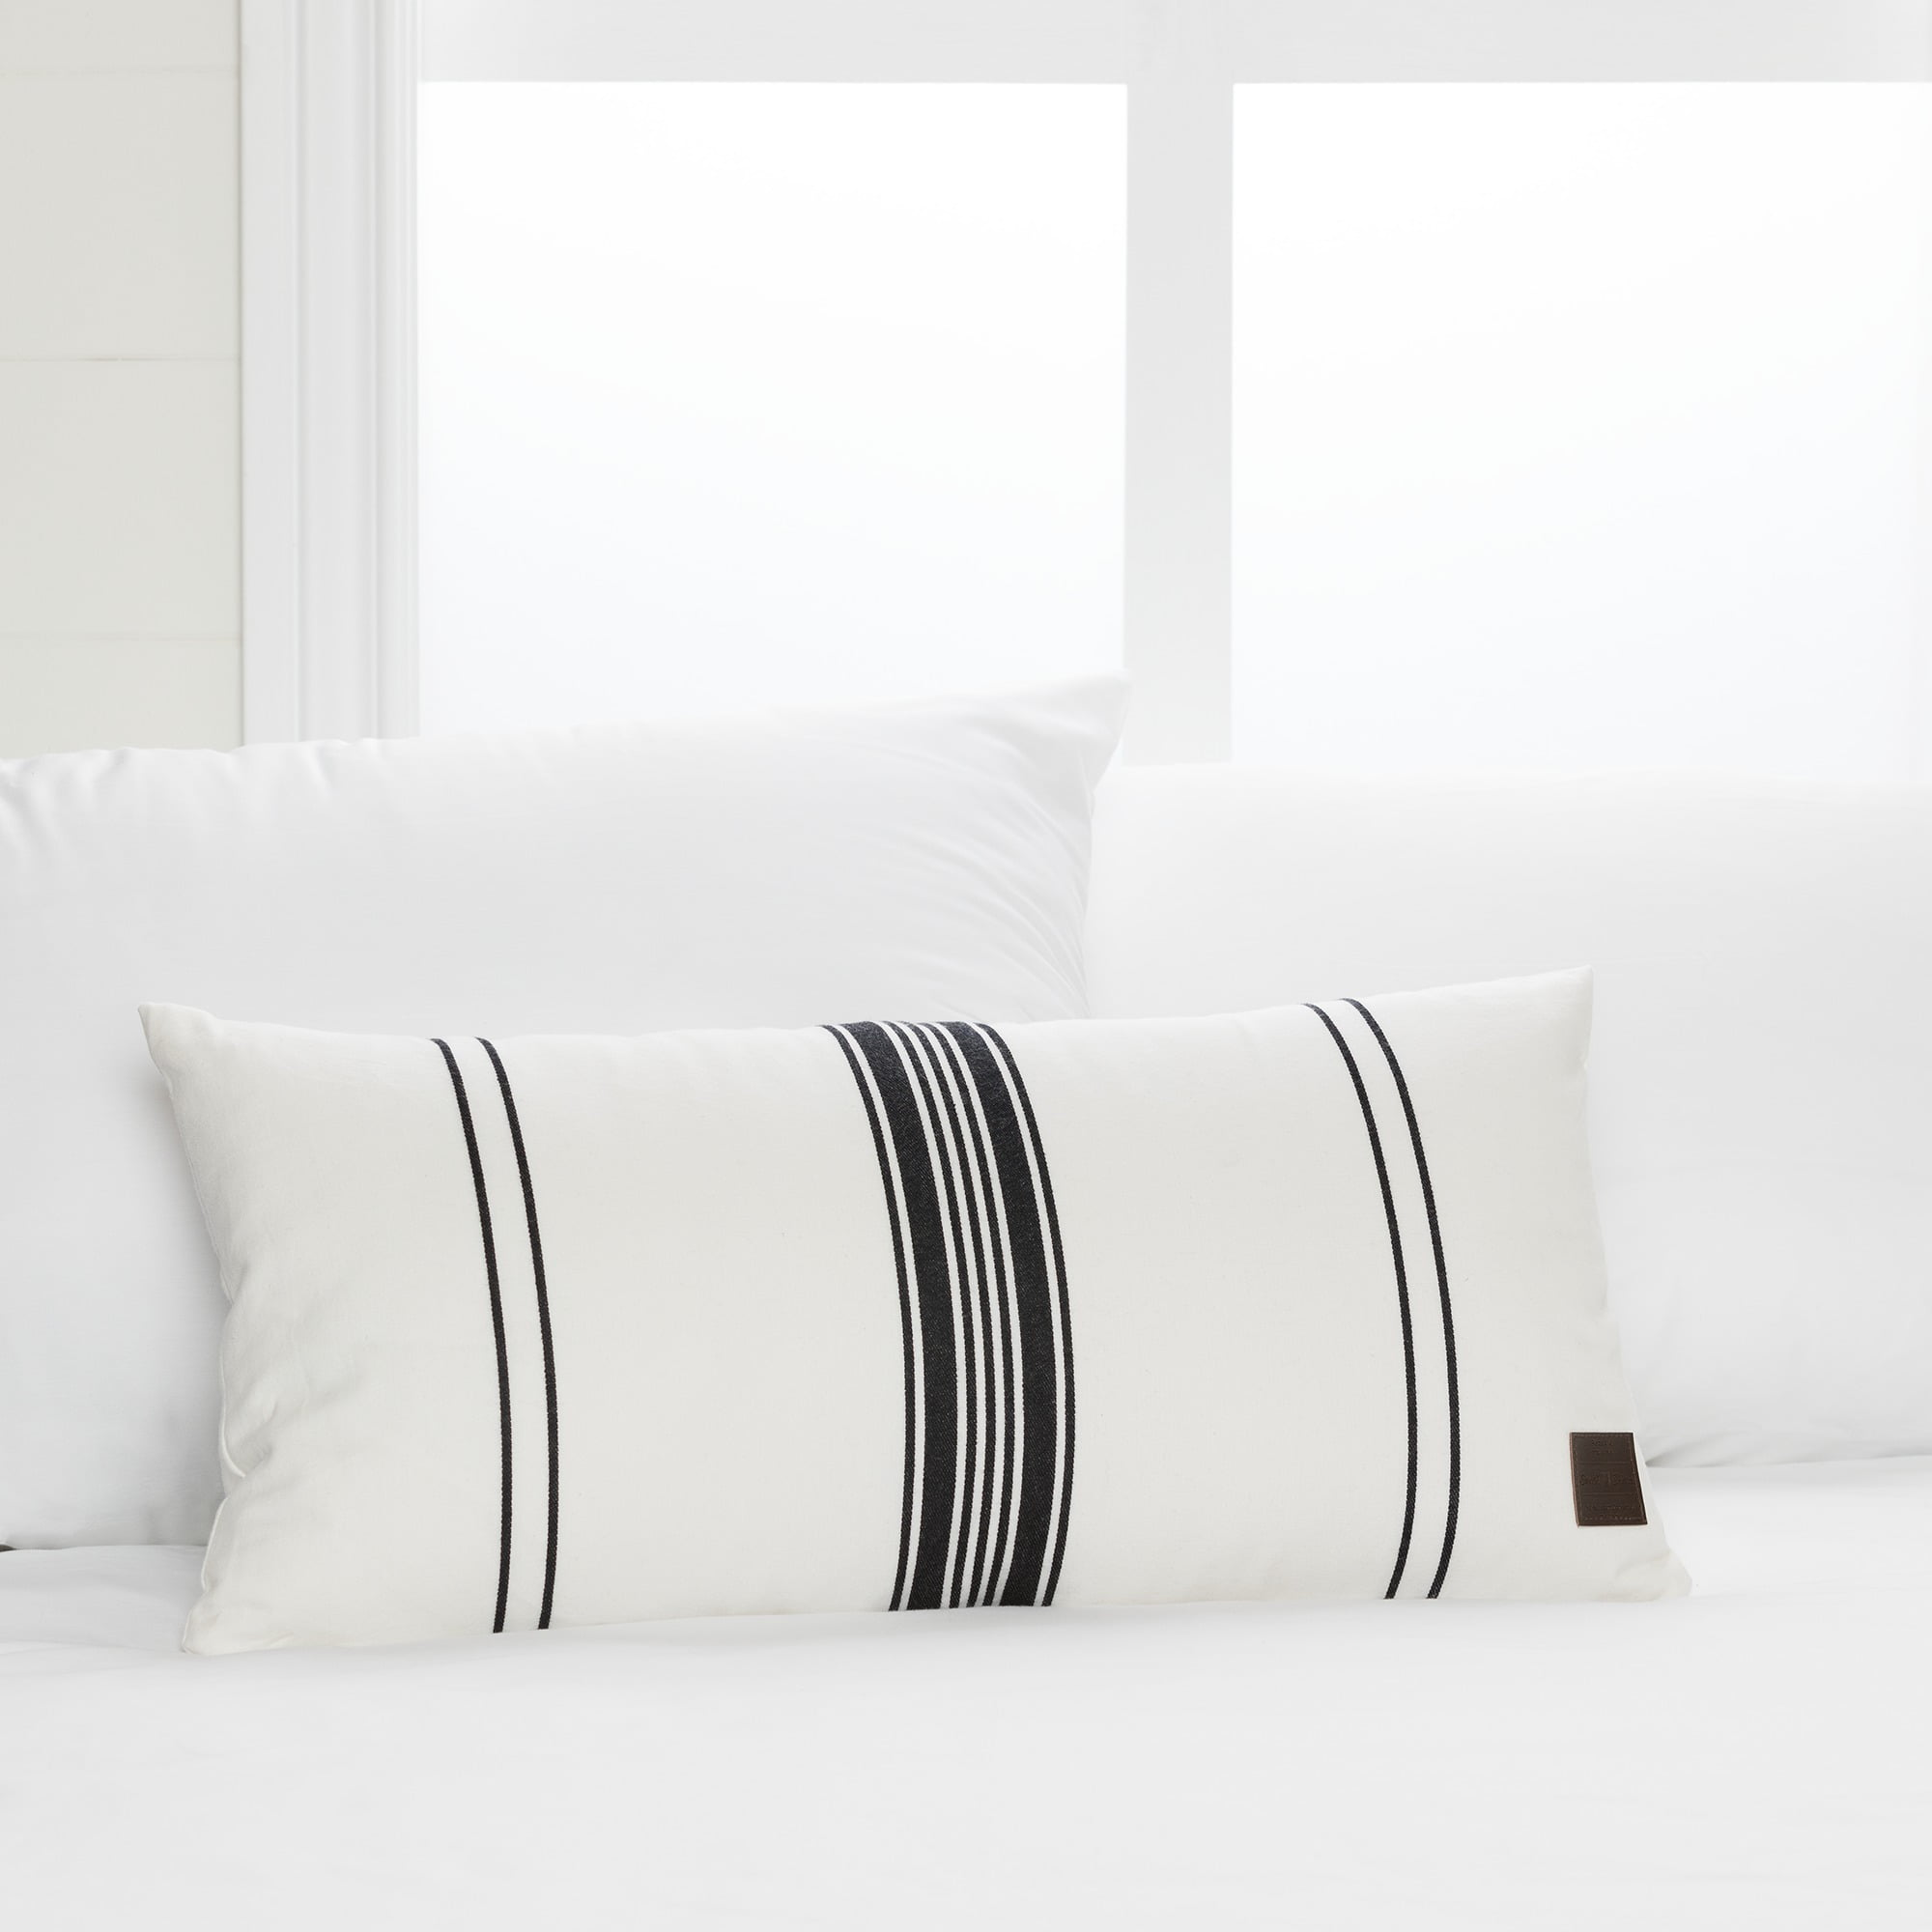 South Shore Lodge White and Black Striped Throw Pillow by South Shore